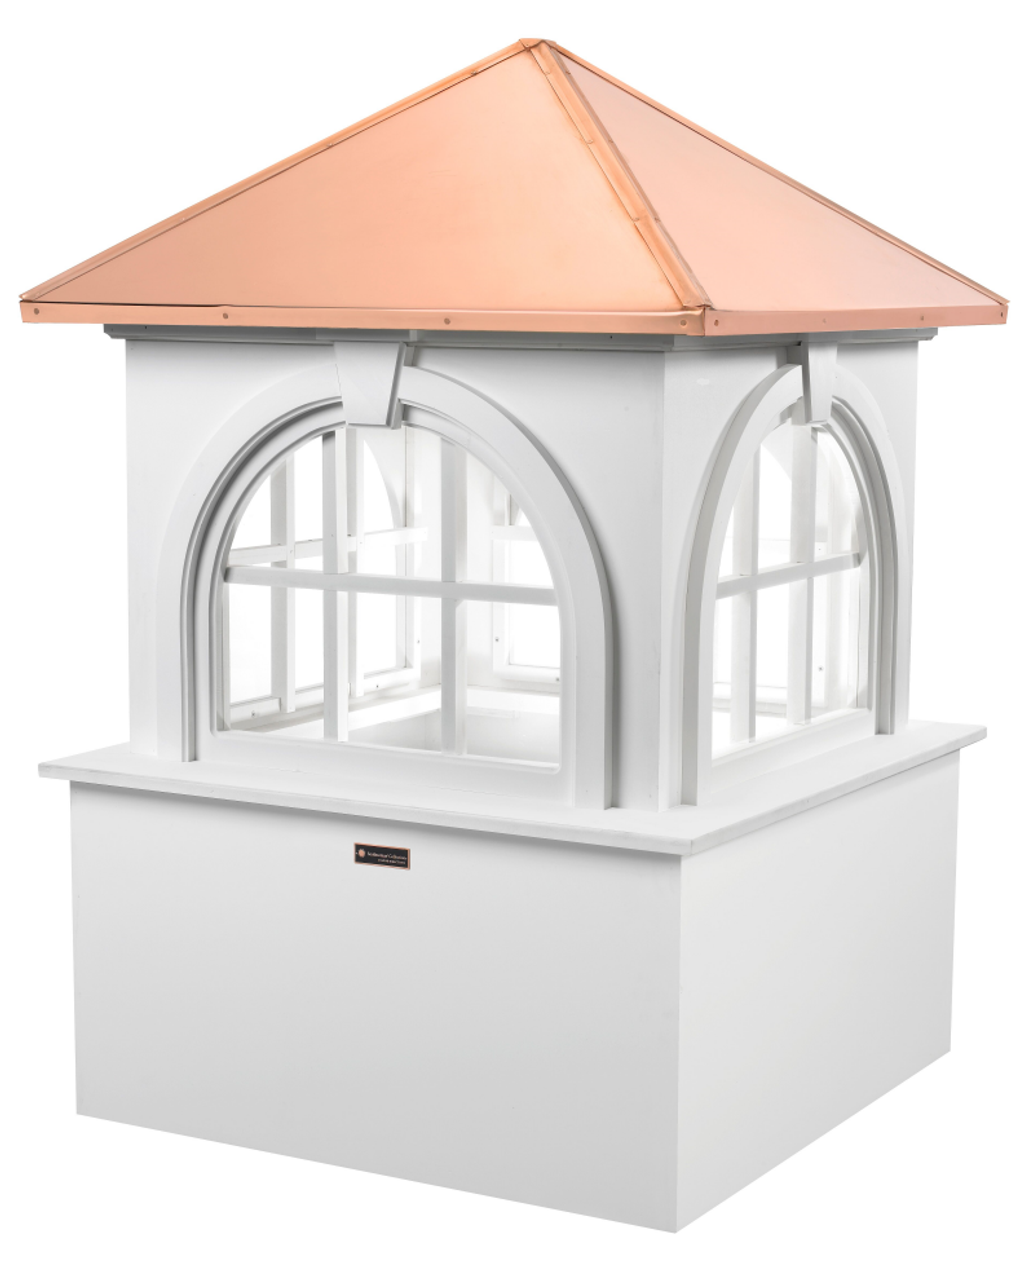 Good Directions Smithsonian Vinyl Arlington Cupola - 36in. square x 51in. high